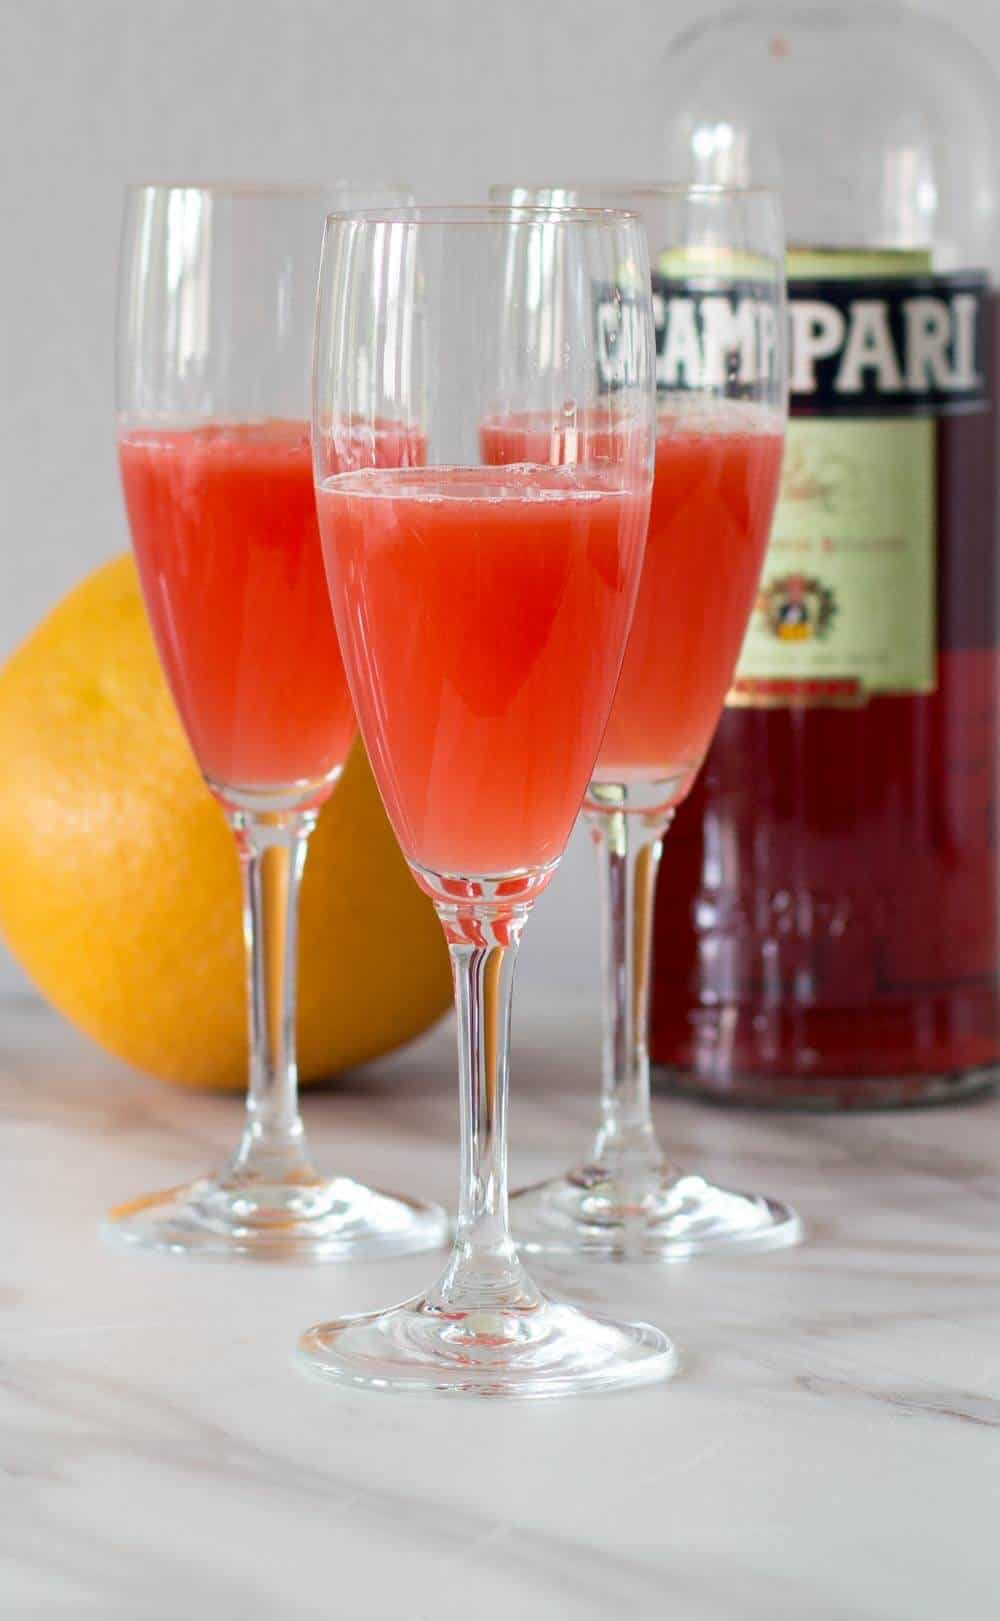 Campari grapefruit punch with oleo saccharum in front of grapefruit and Campari